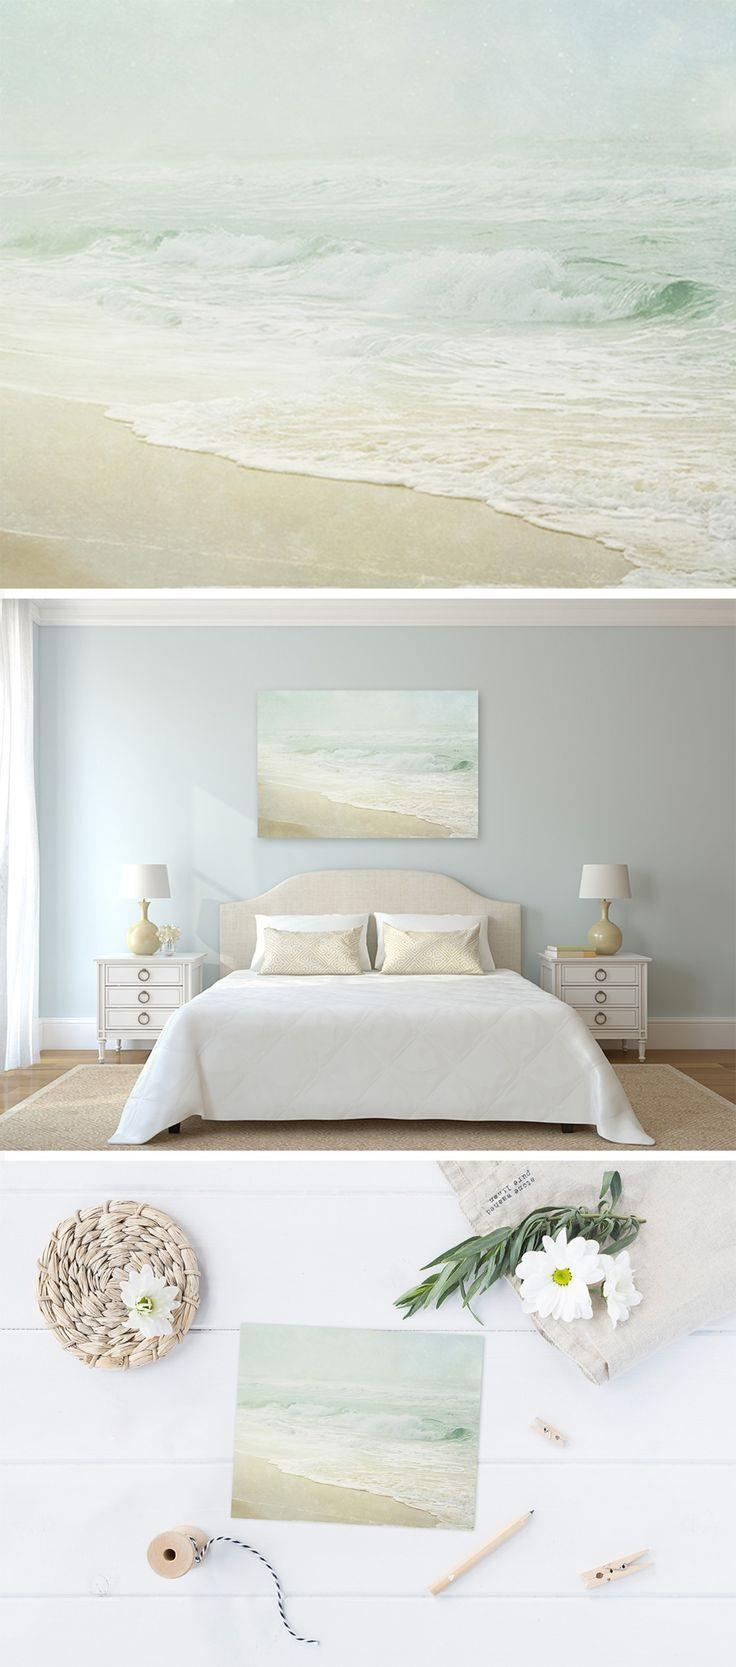 Best 25+ Home Coastal Art Ideas On Pinterest | Extra Large Wall For Beach Cottage Wall Art (View 2 of 20)